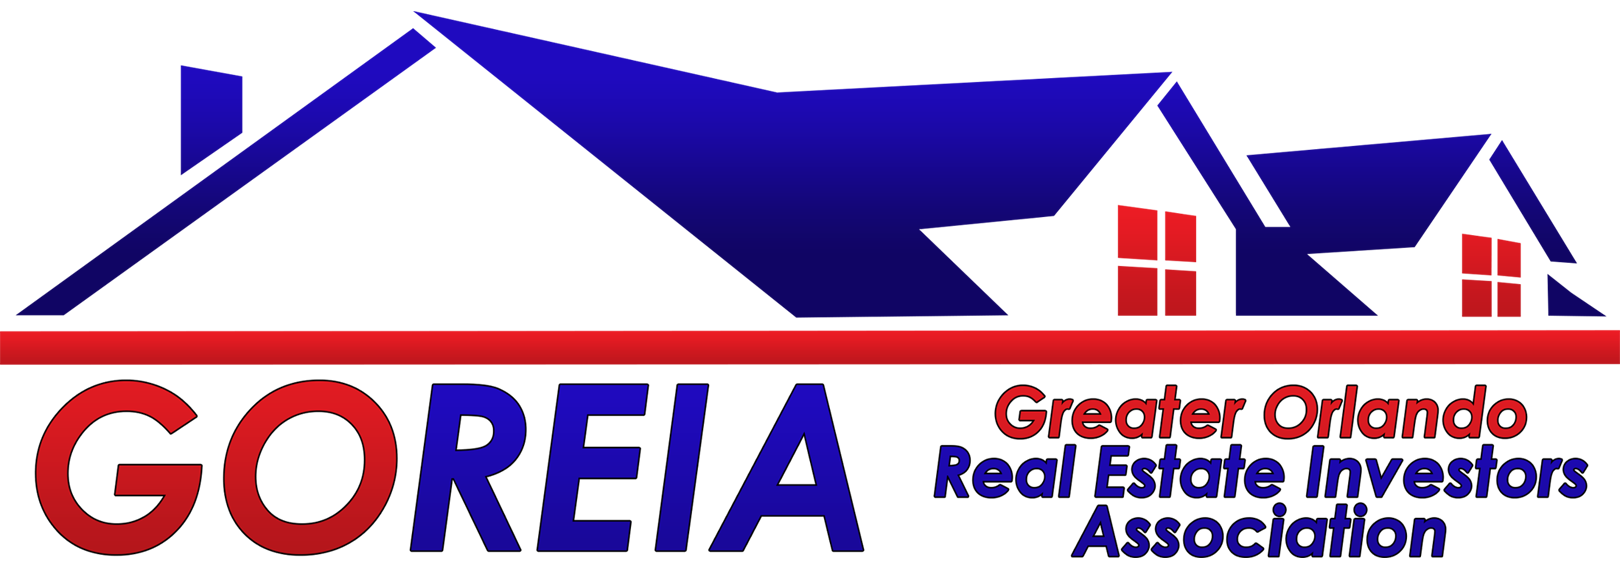 (GOREIA) Greater Orlando Real Estate Investor Association